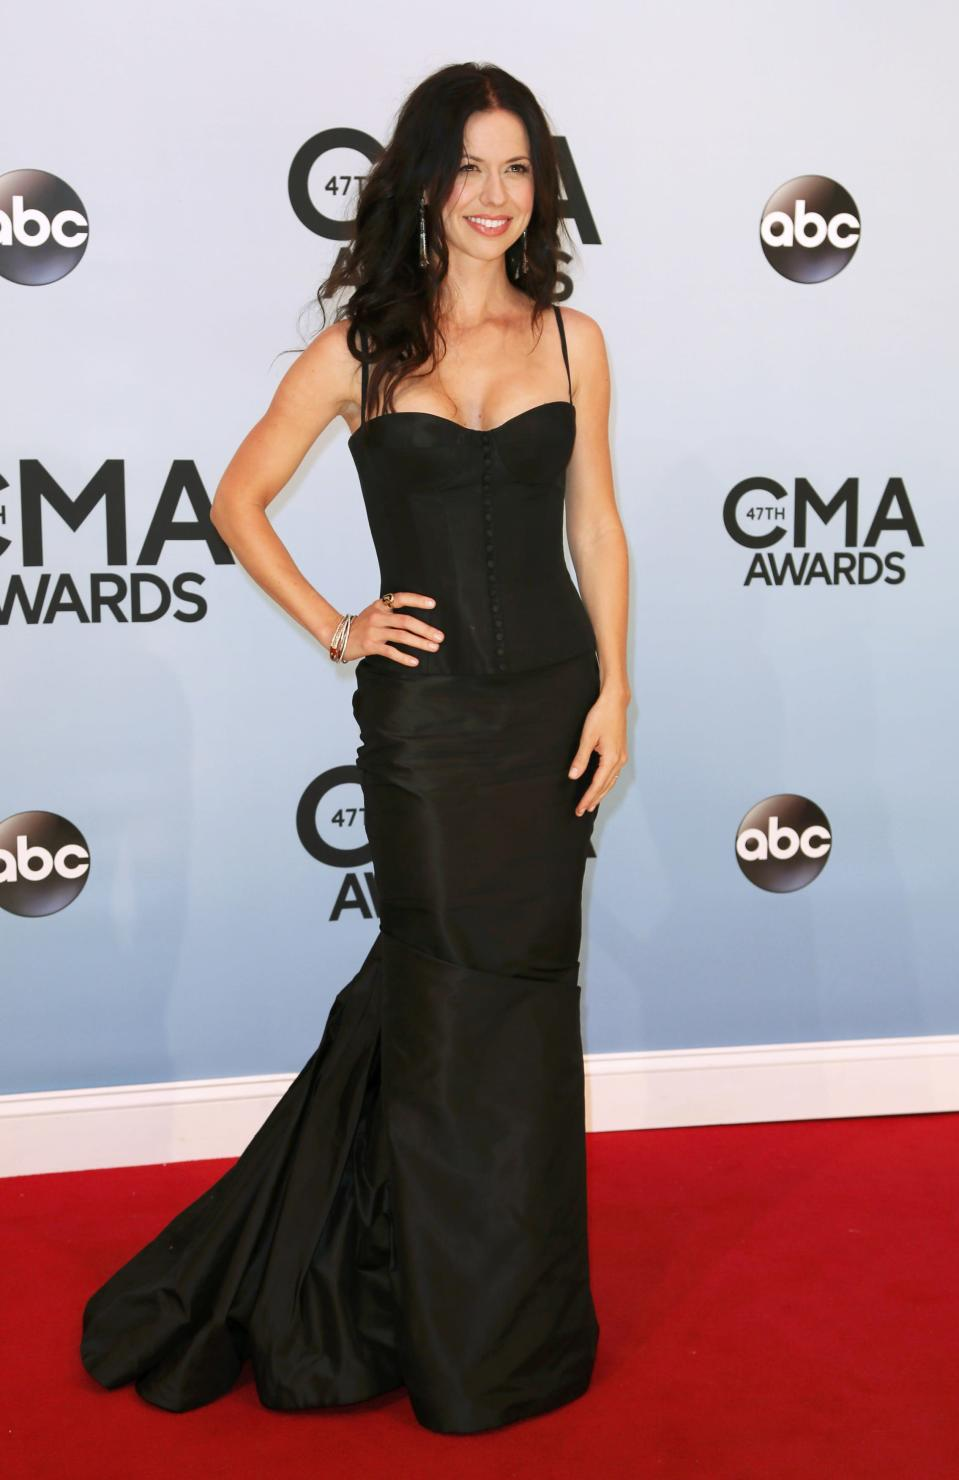 Joy Williams poses on arrival at the 47th Country Music Association Awards in Nashville, Tennessee November 6, 2013. REUTERS/Eric Henderson (UNITED STATES - Tags: ENTERTAINMENT)